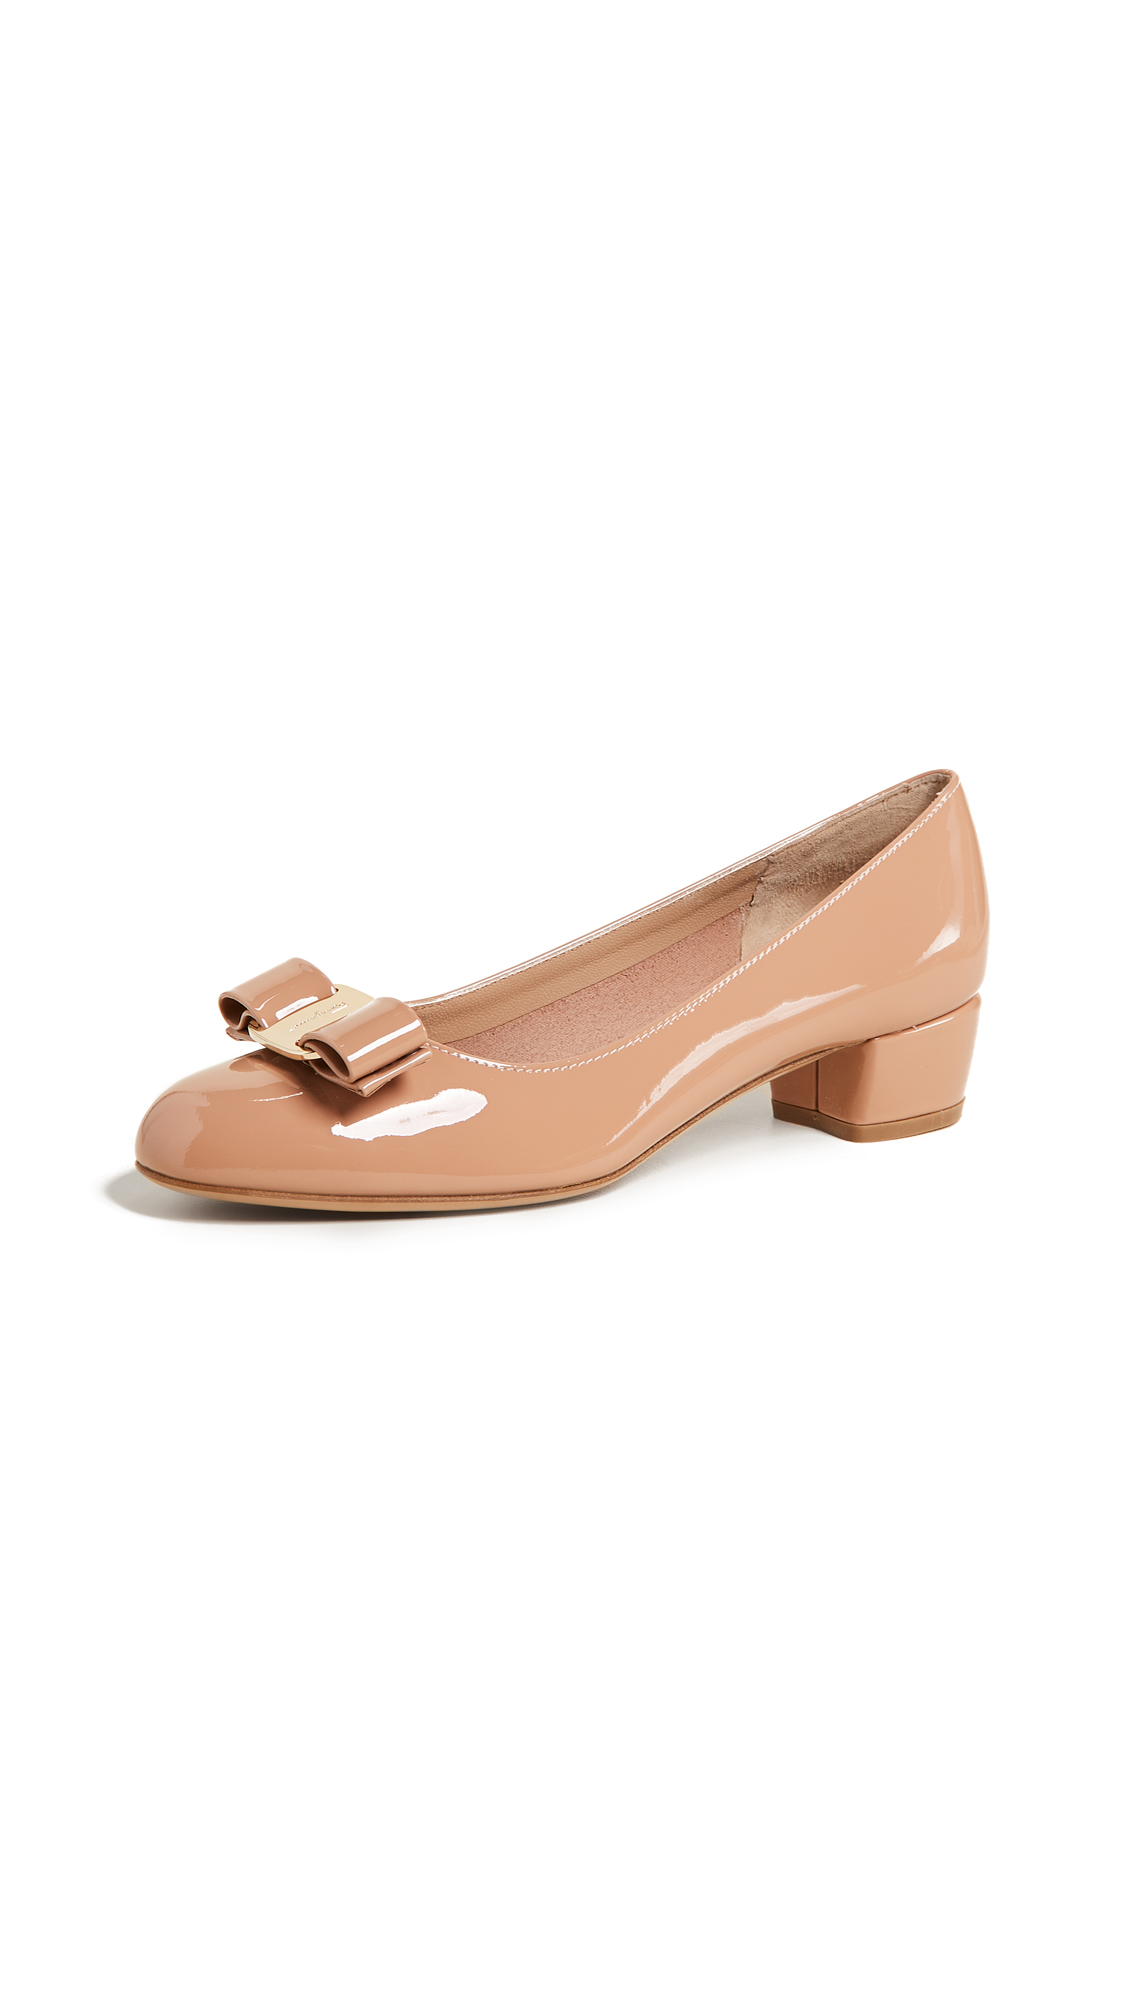 Salvatore Ferragamo Vara Low Heel Pumps - New Blush